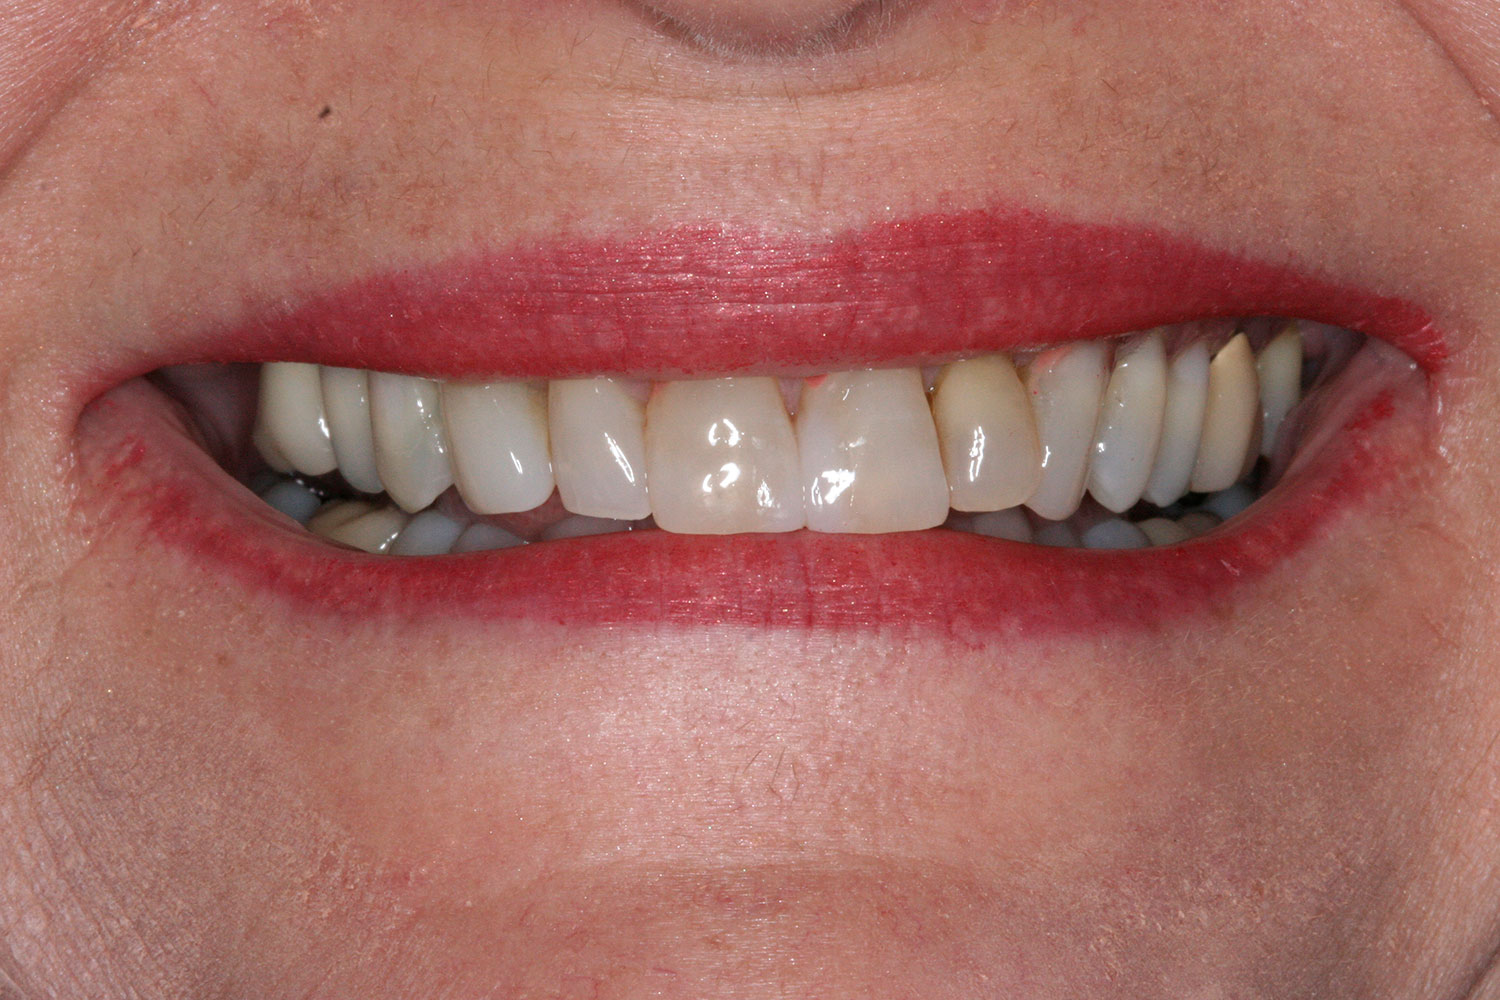 After reshaping teeth